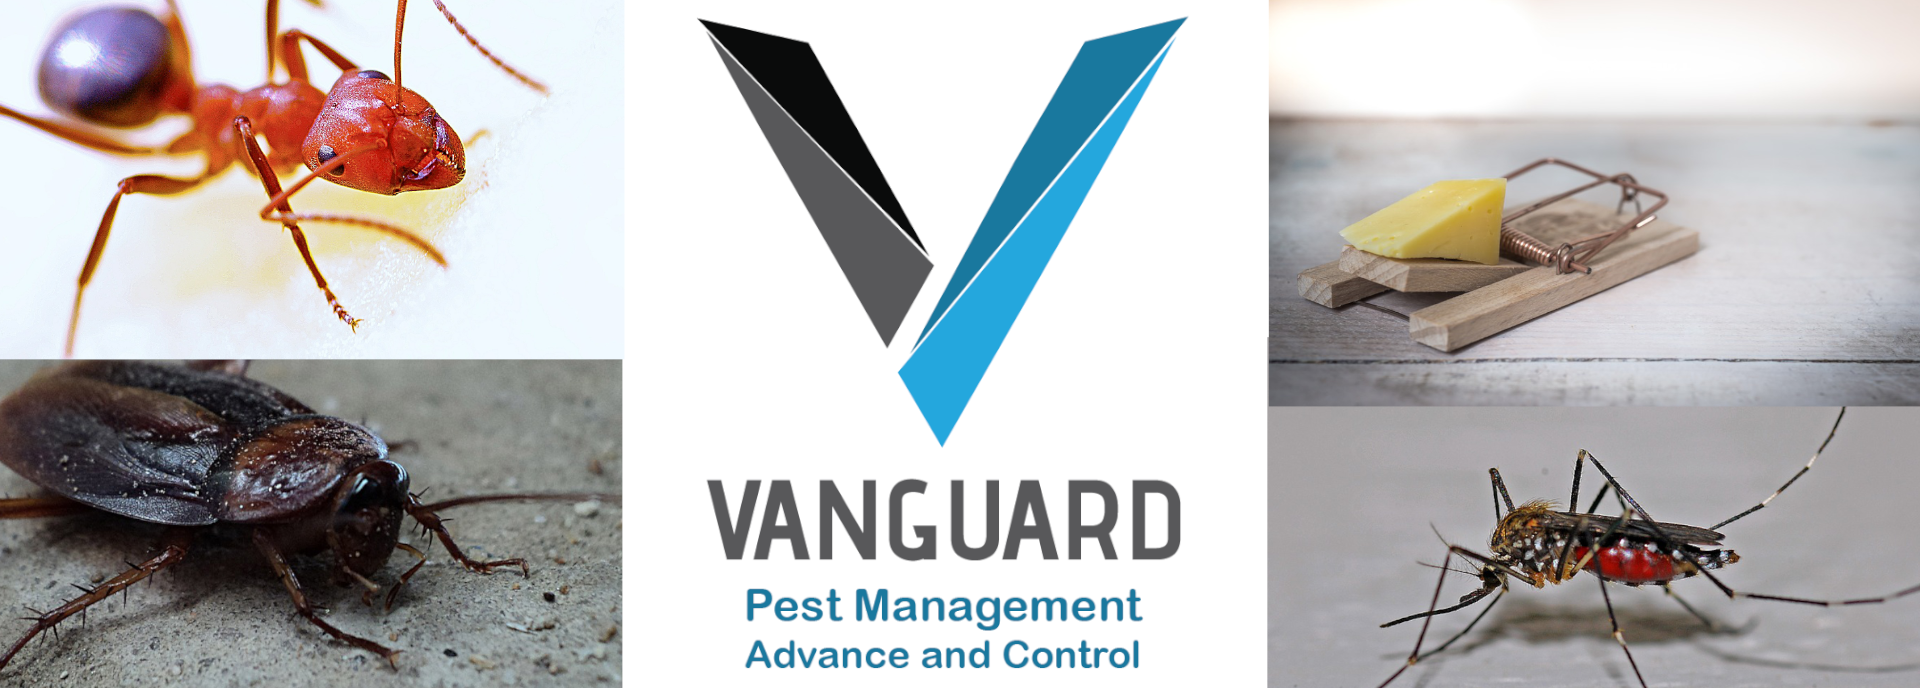 Vanguard Pest Management Header